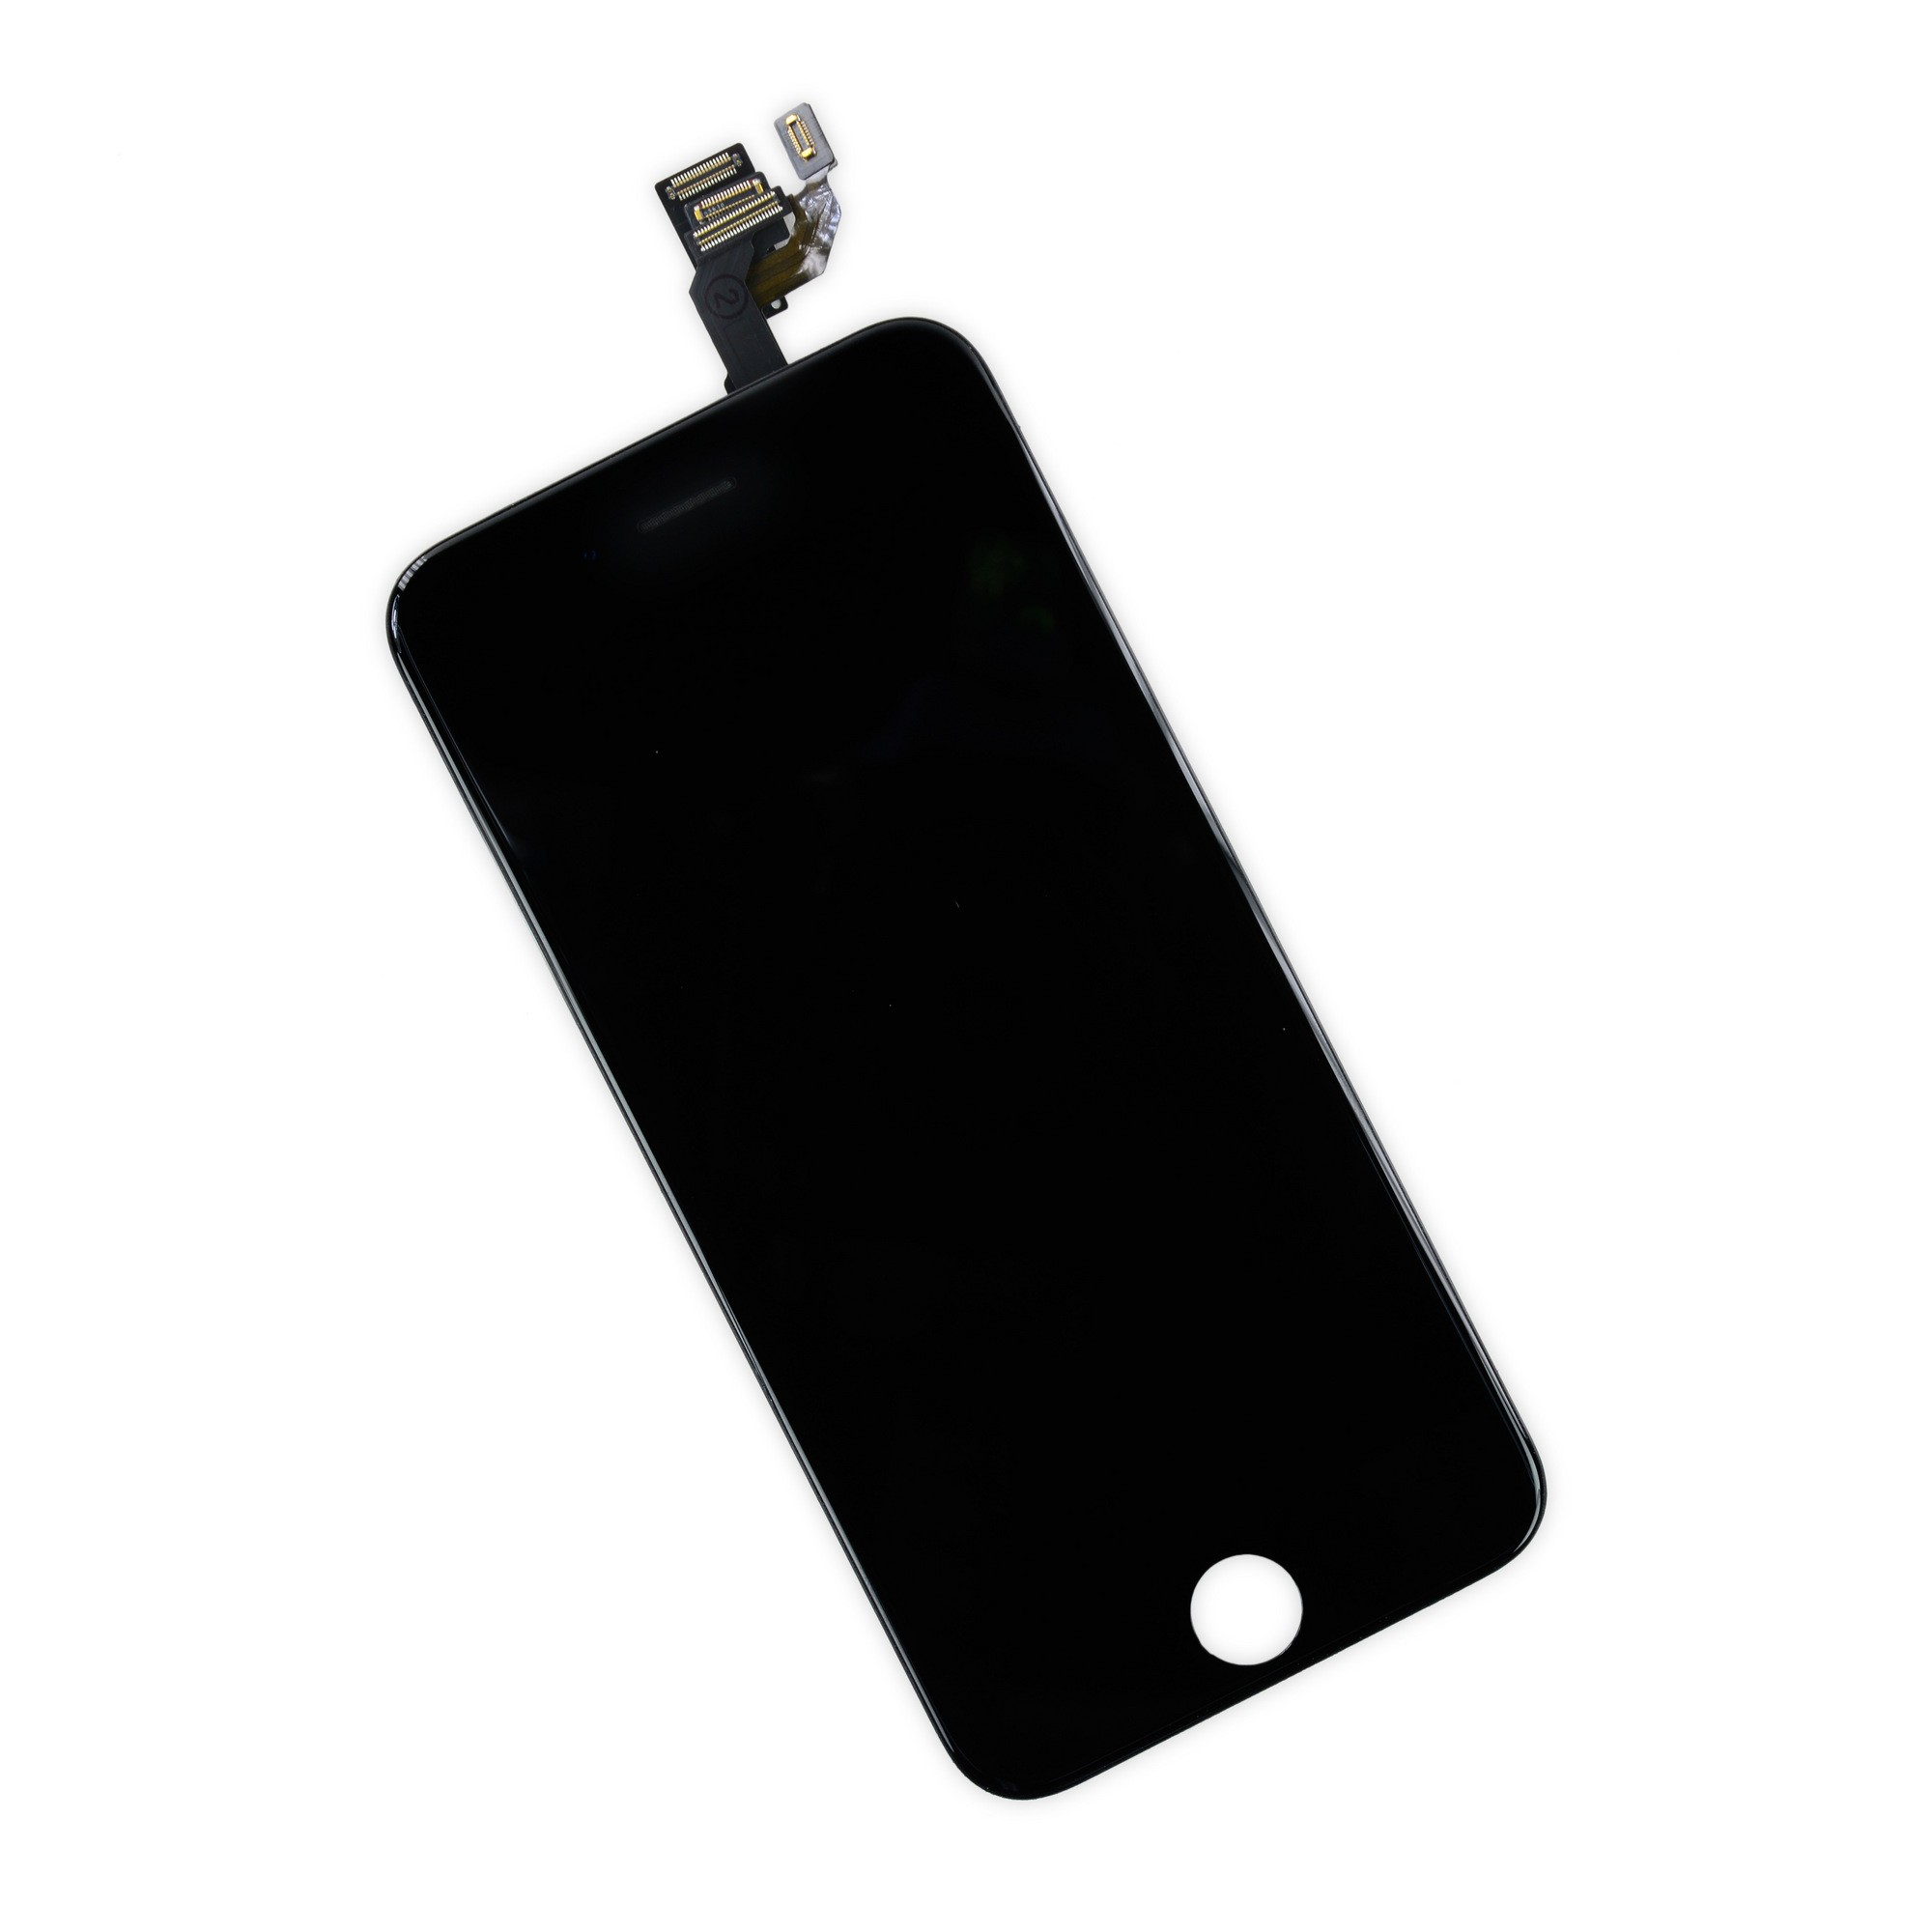 iPhone 6 LCD Screen and Digitizer Full Assembly, New, Part Only - Black, IF268-000-1